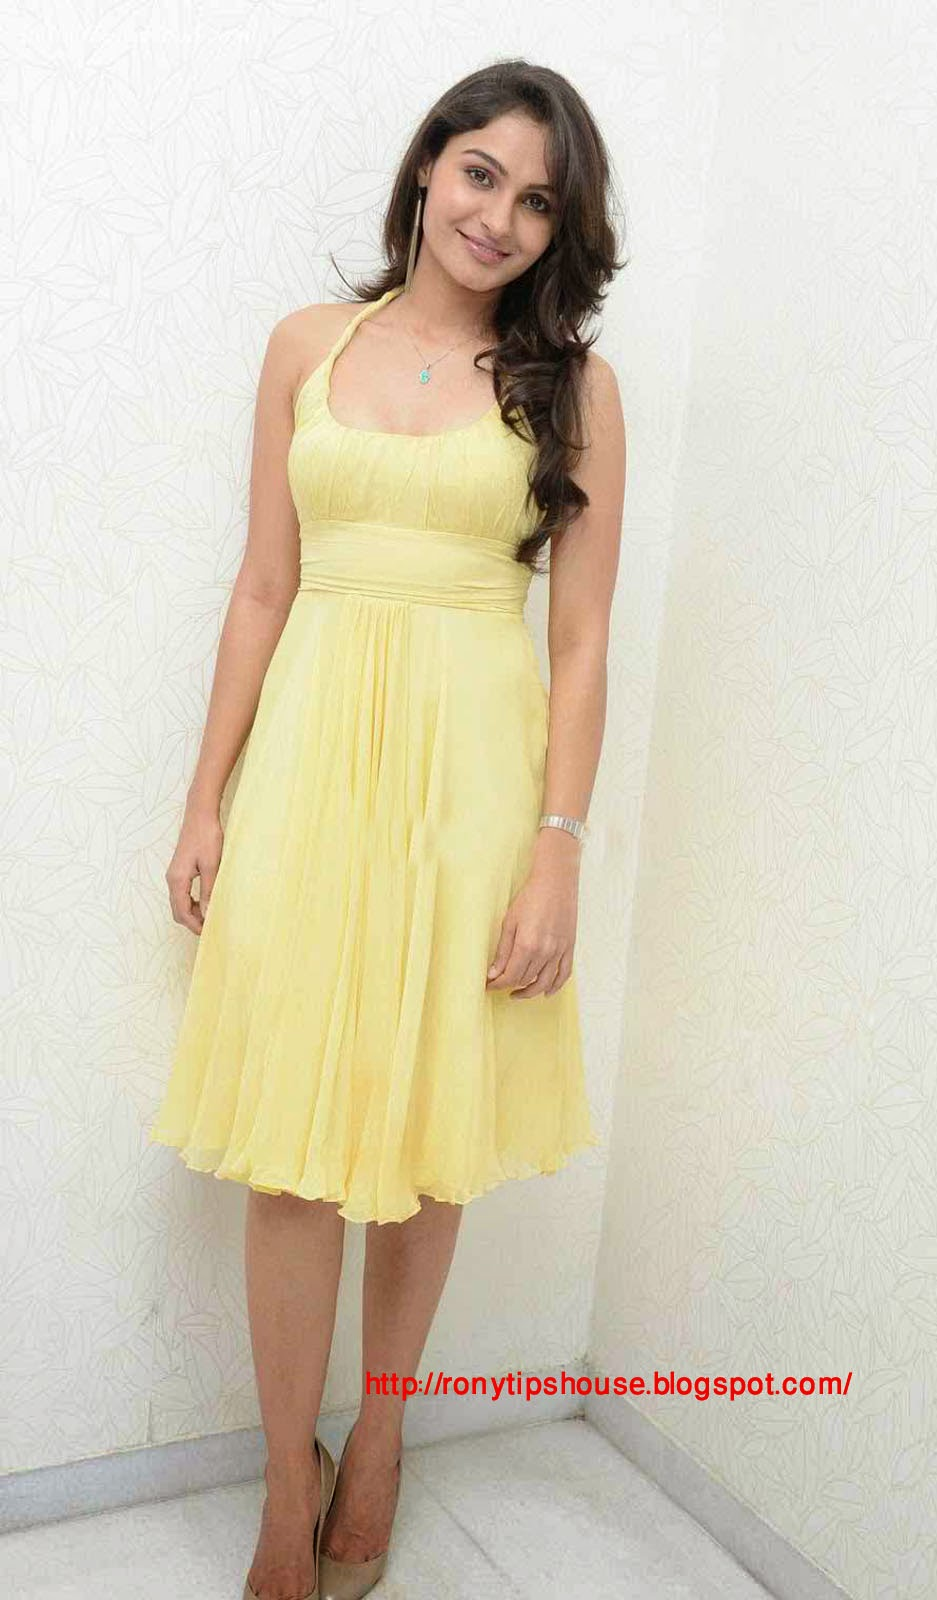 jeremiah hindu singles Andrea jeremiah (born 21 december 1984) is an indian actress, playback singer , musician  she composed, wrote and sang a single, soul of taramani, as a  promo for her tamil romantic-drama taramani she has composed several music .